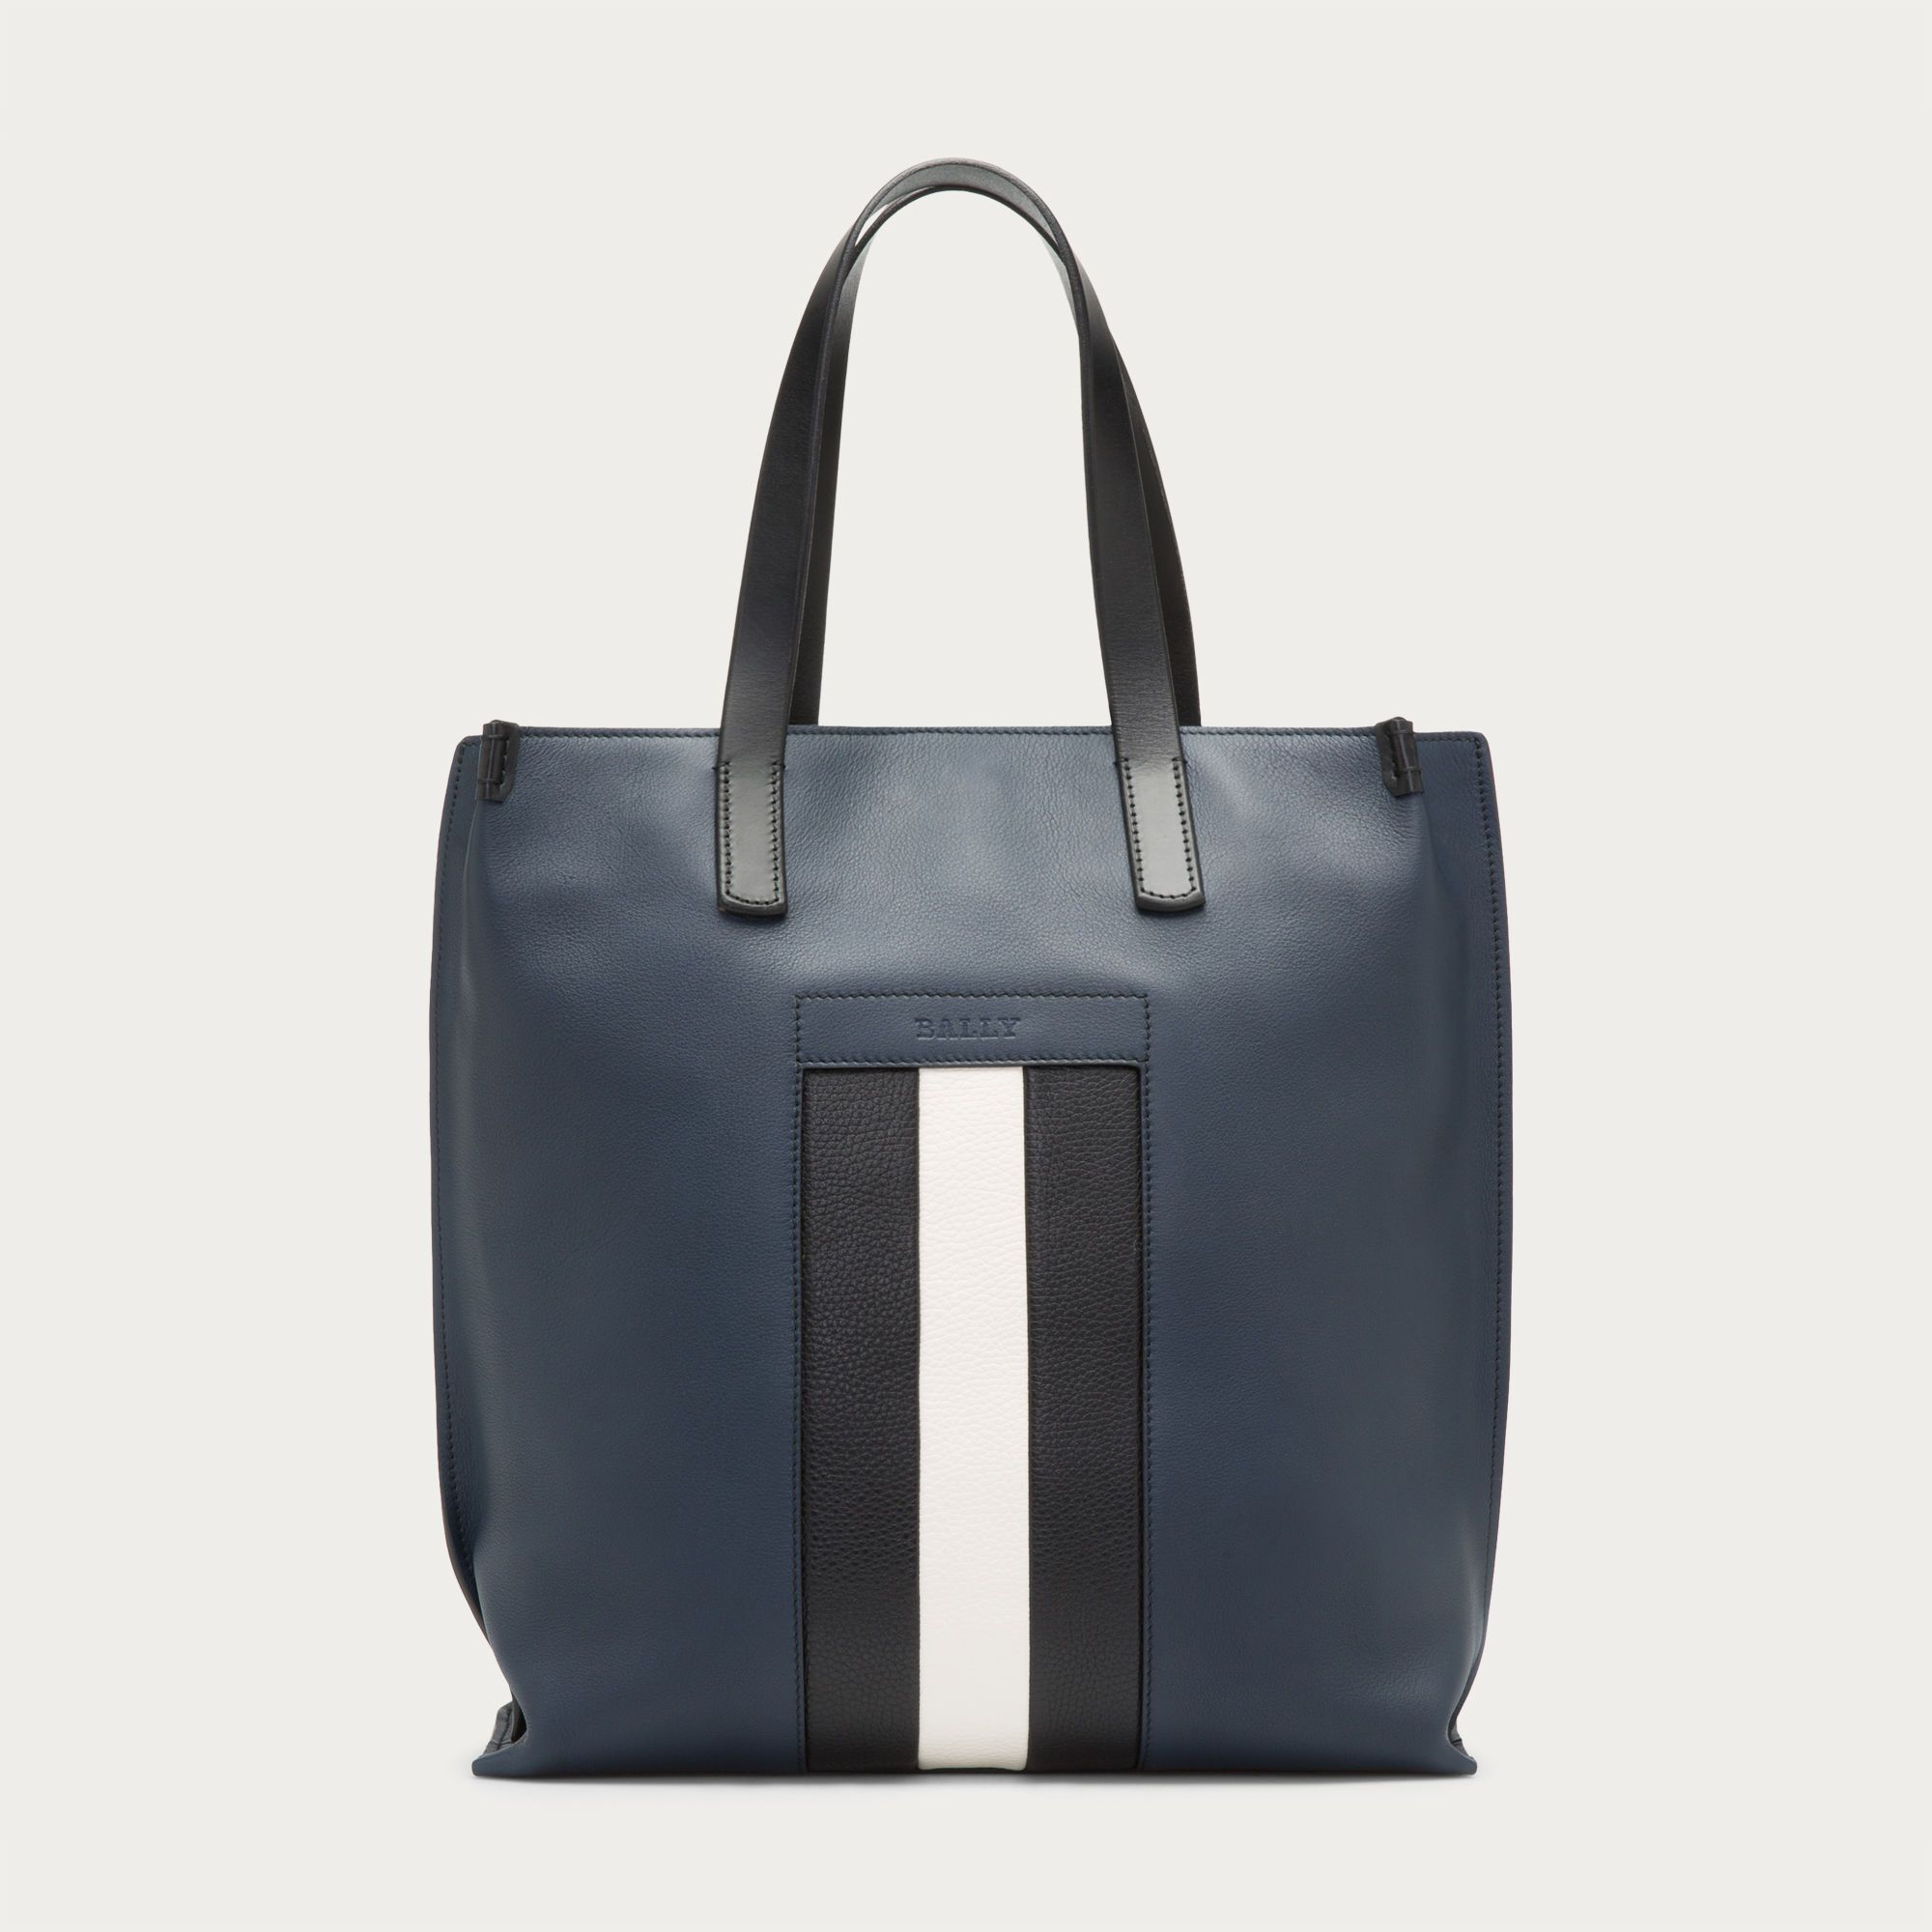 125c495003 Bally BLISSON - DARK NAVY 14 CALF Totes Mens Leather Tote Bag